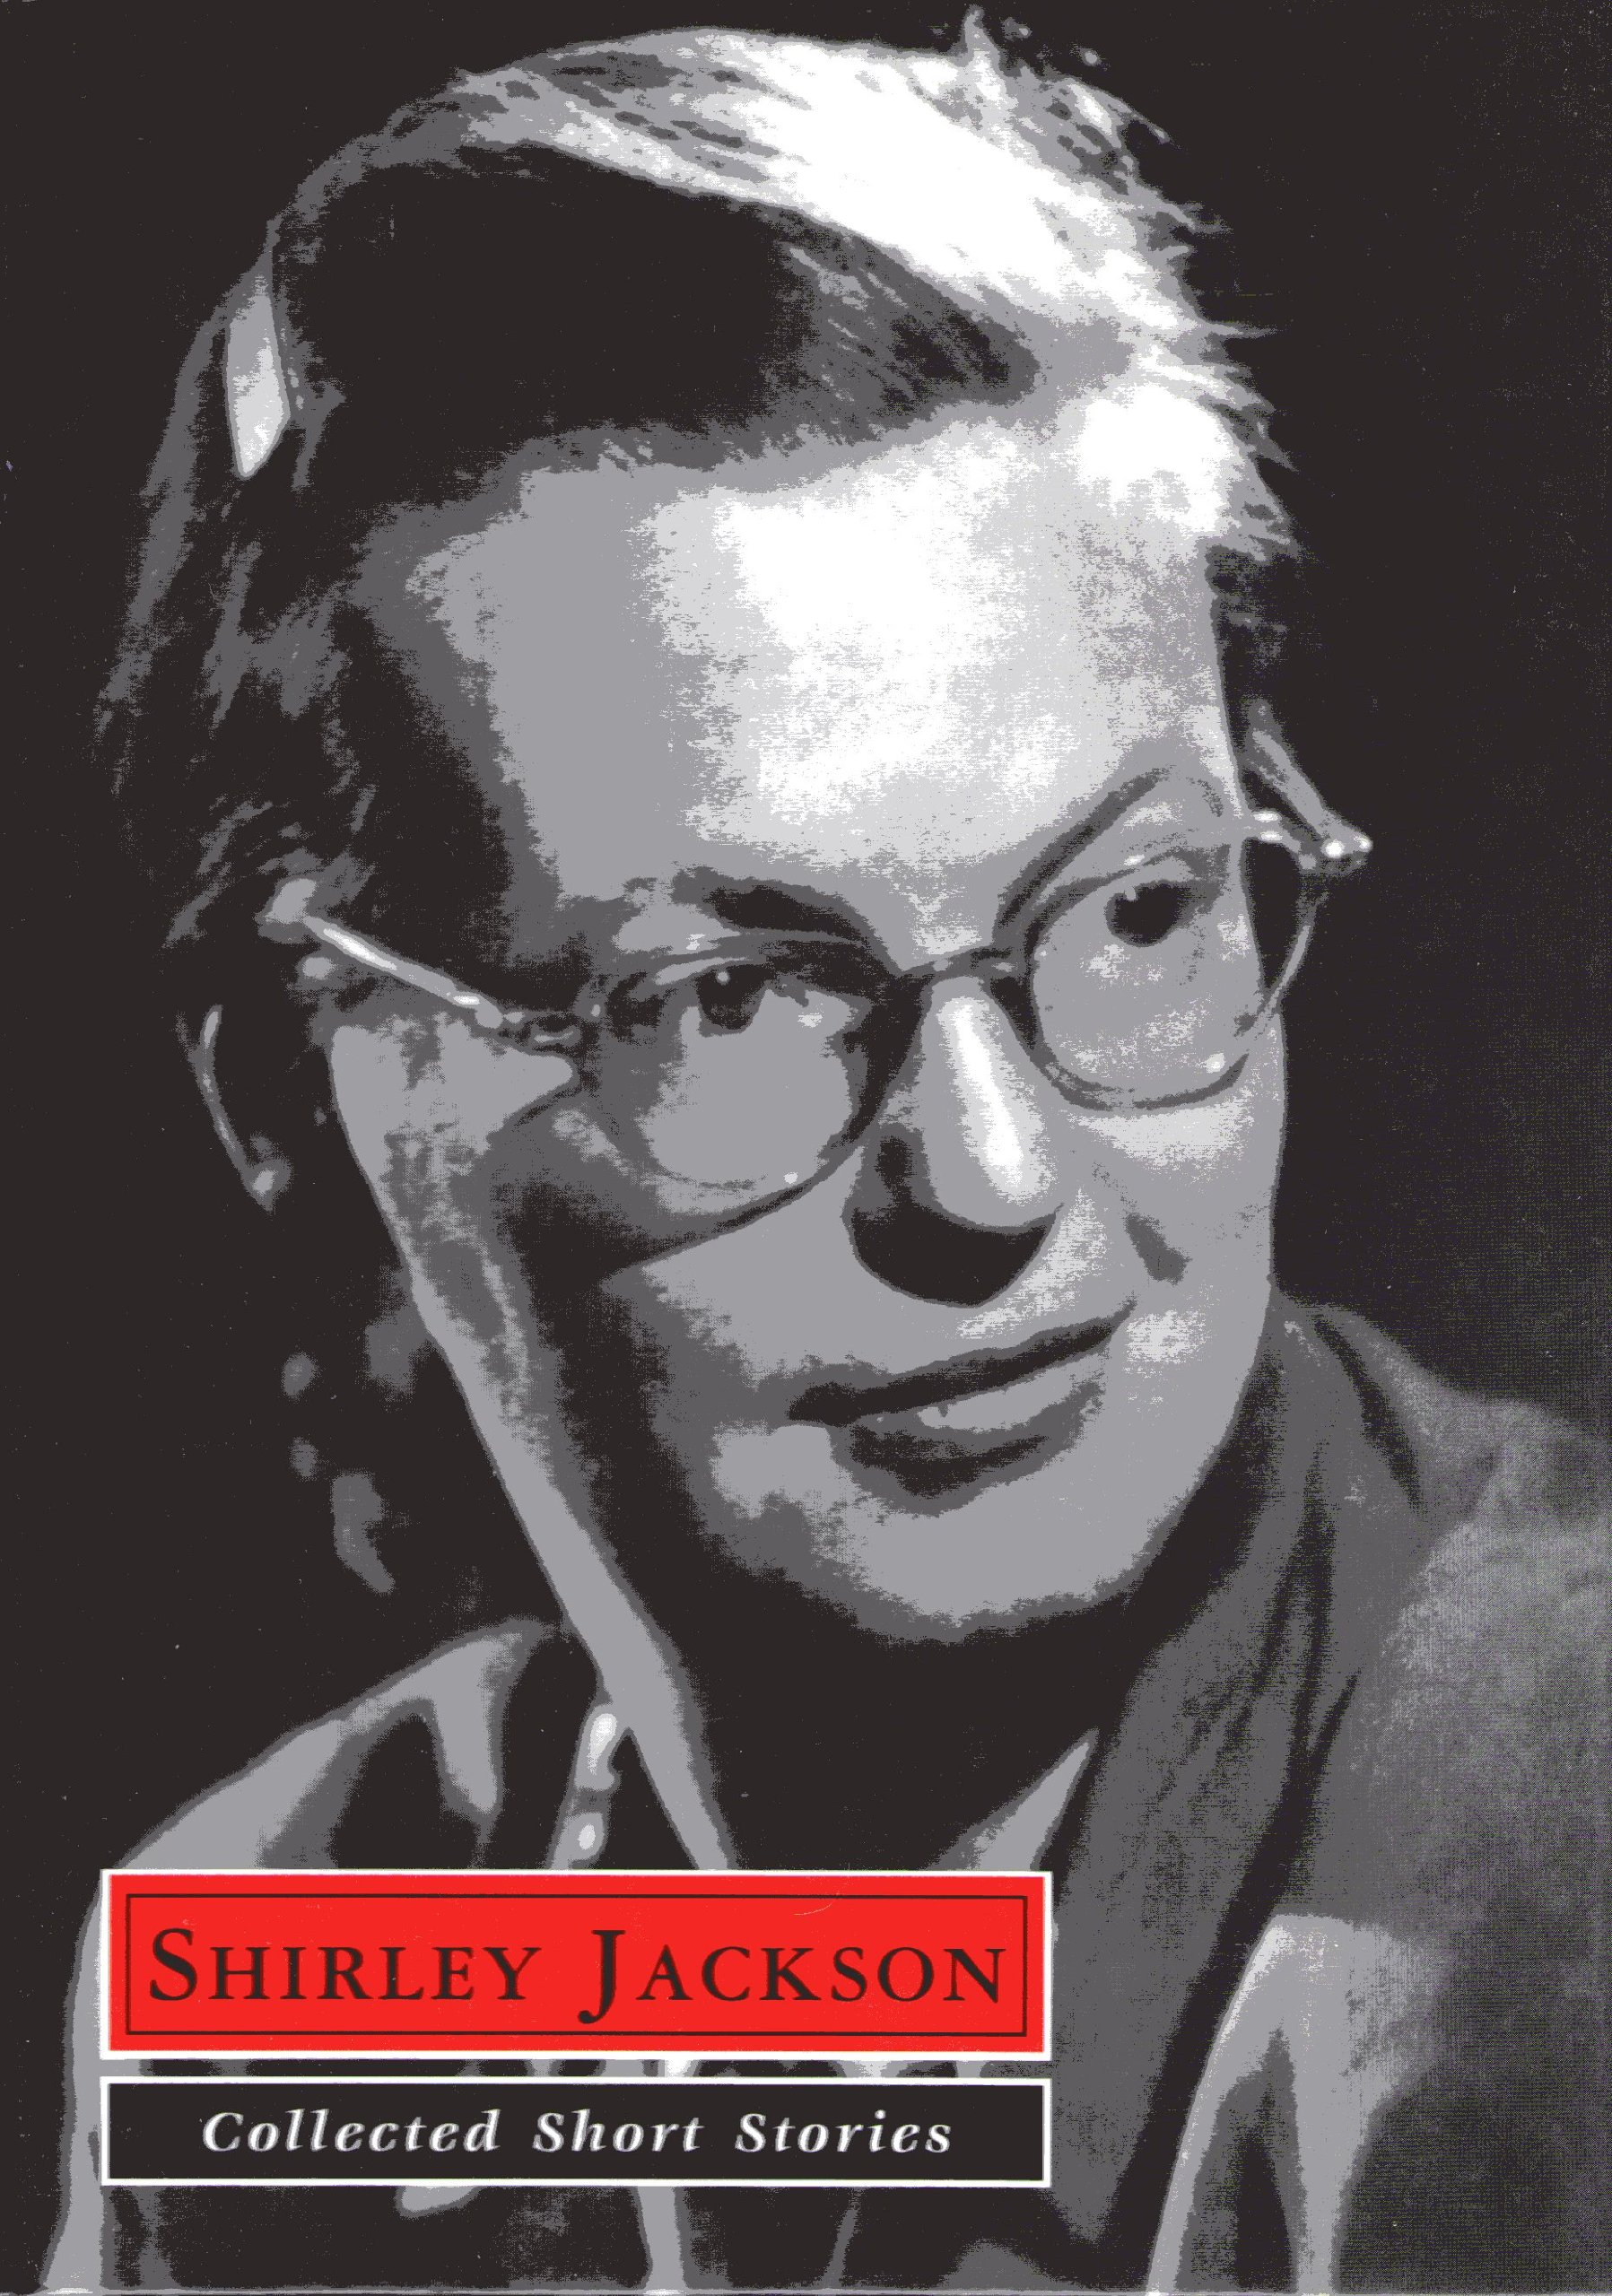 Collected Short Stories by Shirley Jackson